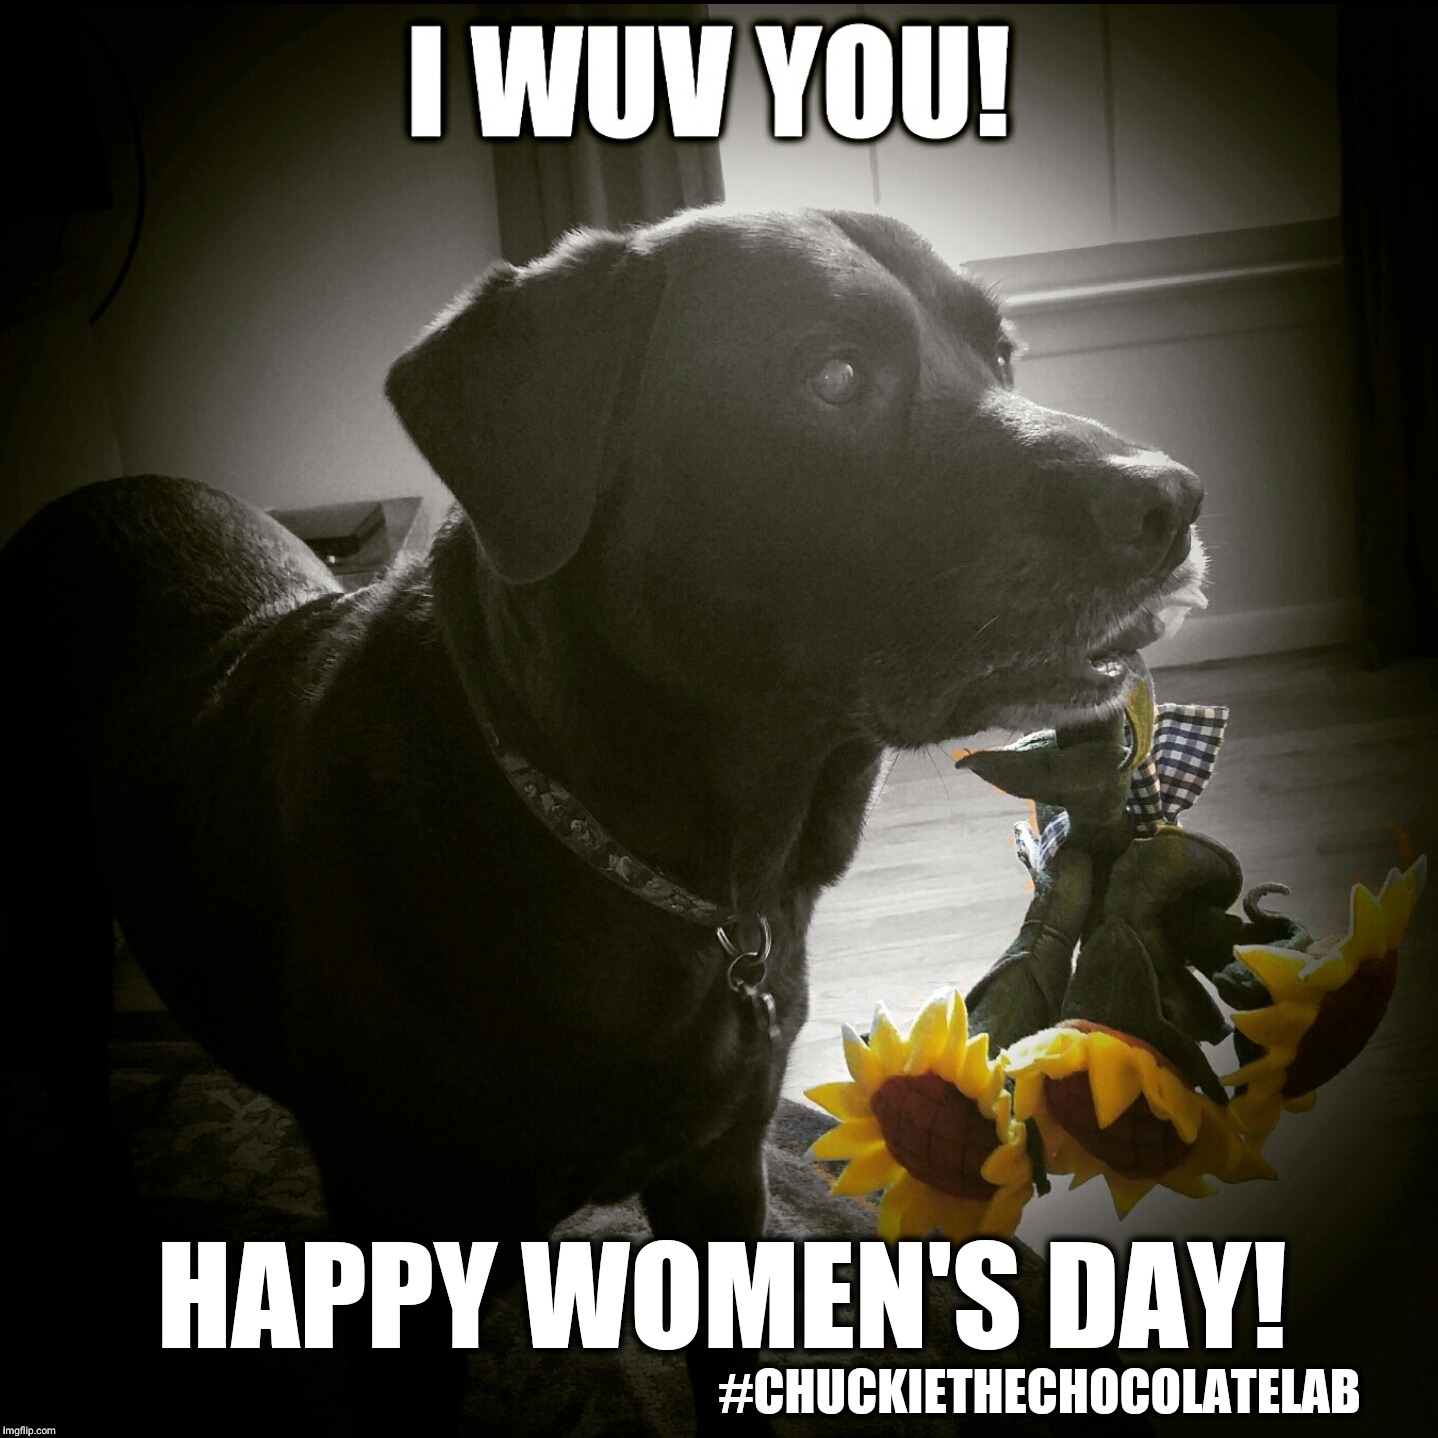 Happy Women's Day!  |  HAPPY WOMEN'S DAY! #CHUCKIETHECHOCOLATELAB | image tagged in chuckie the chocolate lab teamchuckie,happy women's day,women's day,international women's day,dogs,memes | made w/ Imgflip meme maker